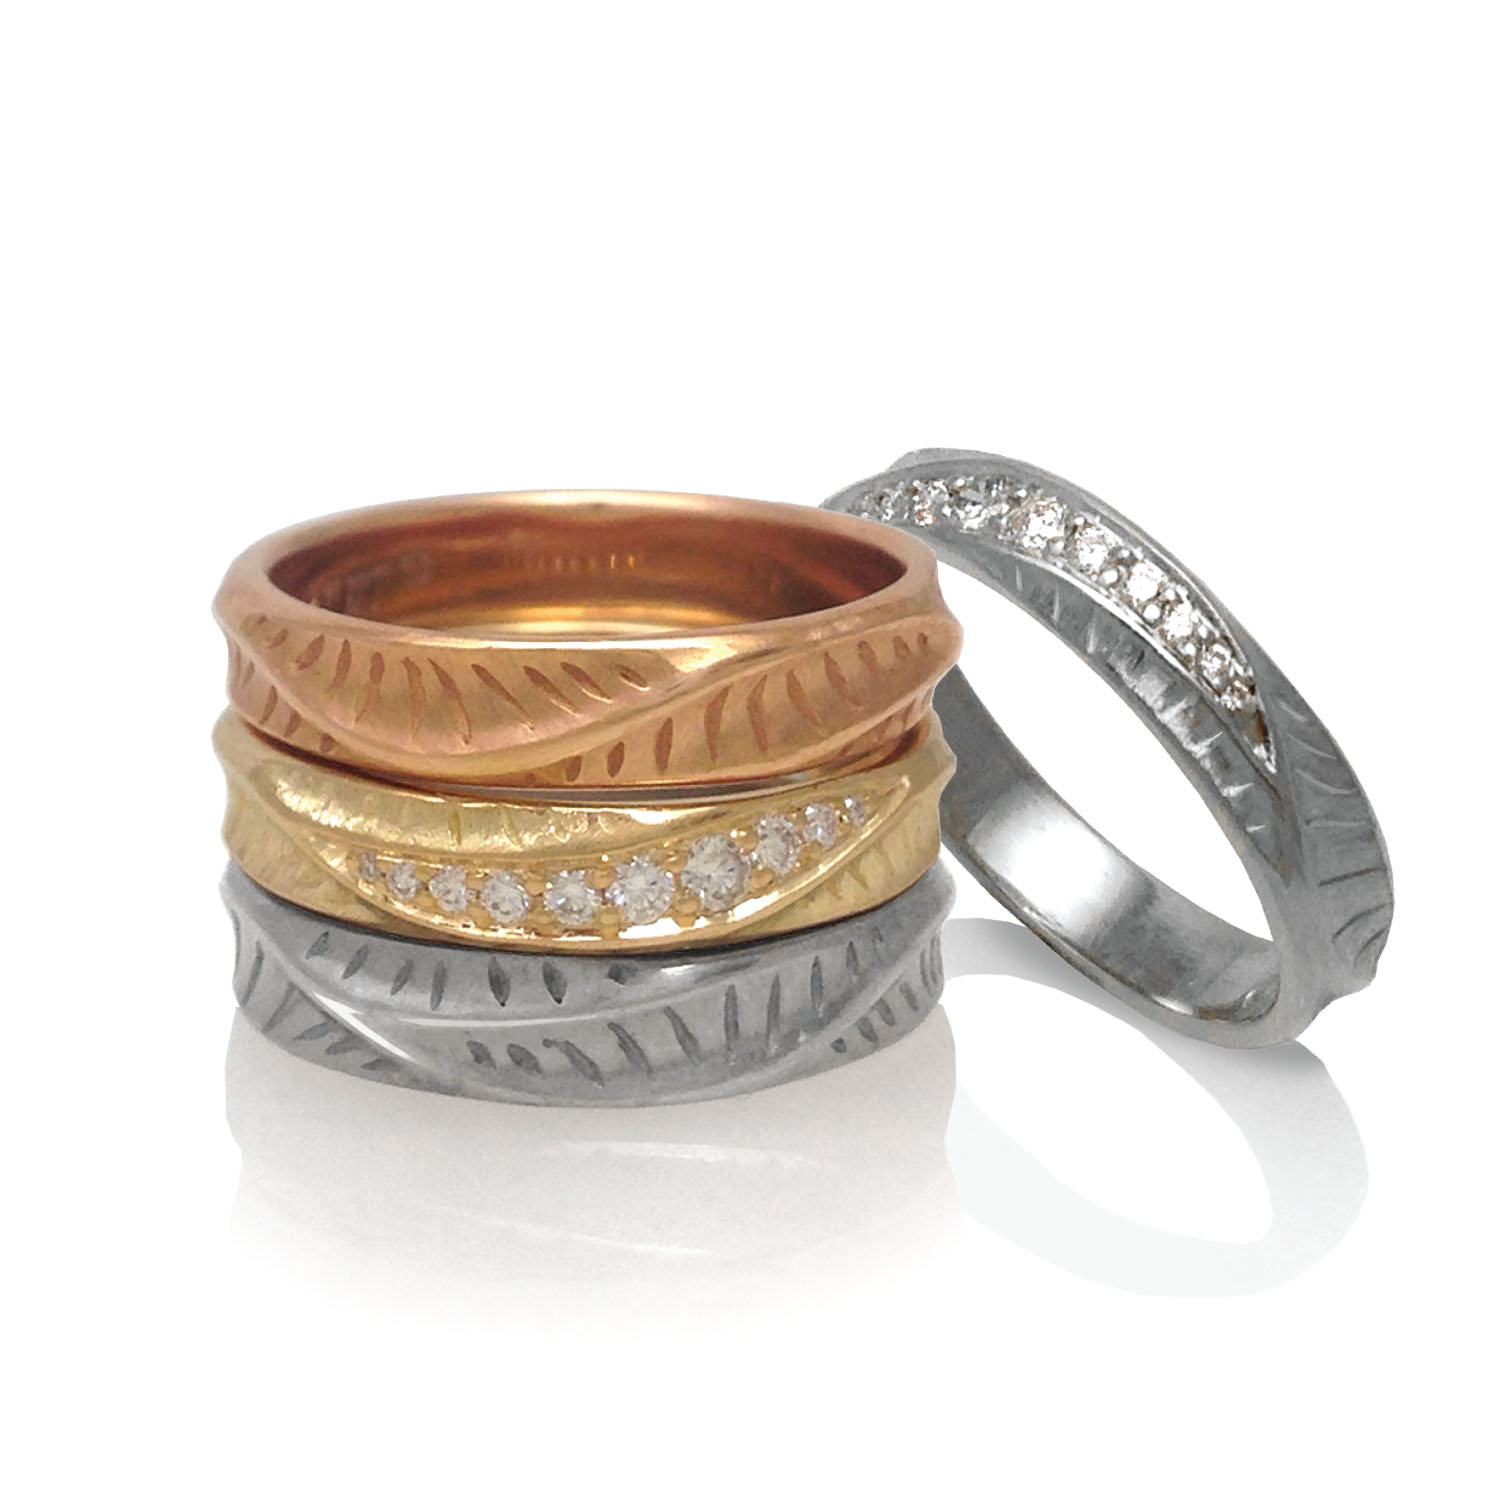 Stackable Rings and Wave Crest Ring by K.Mita | Sand Dune Collection